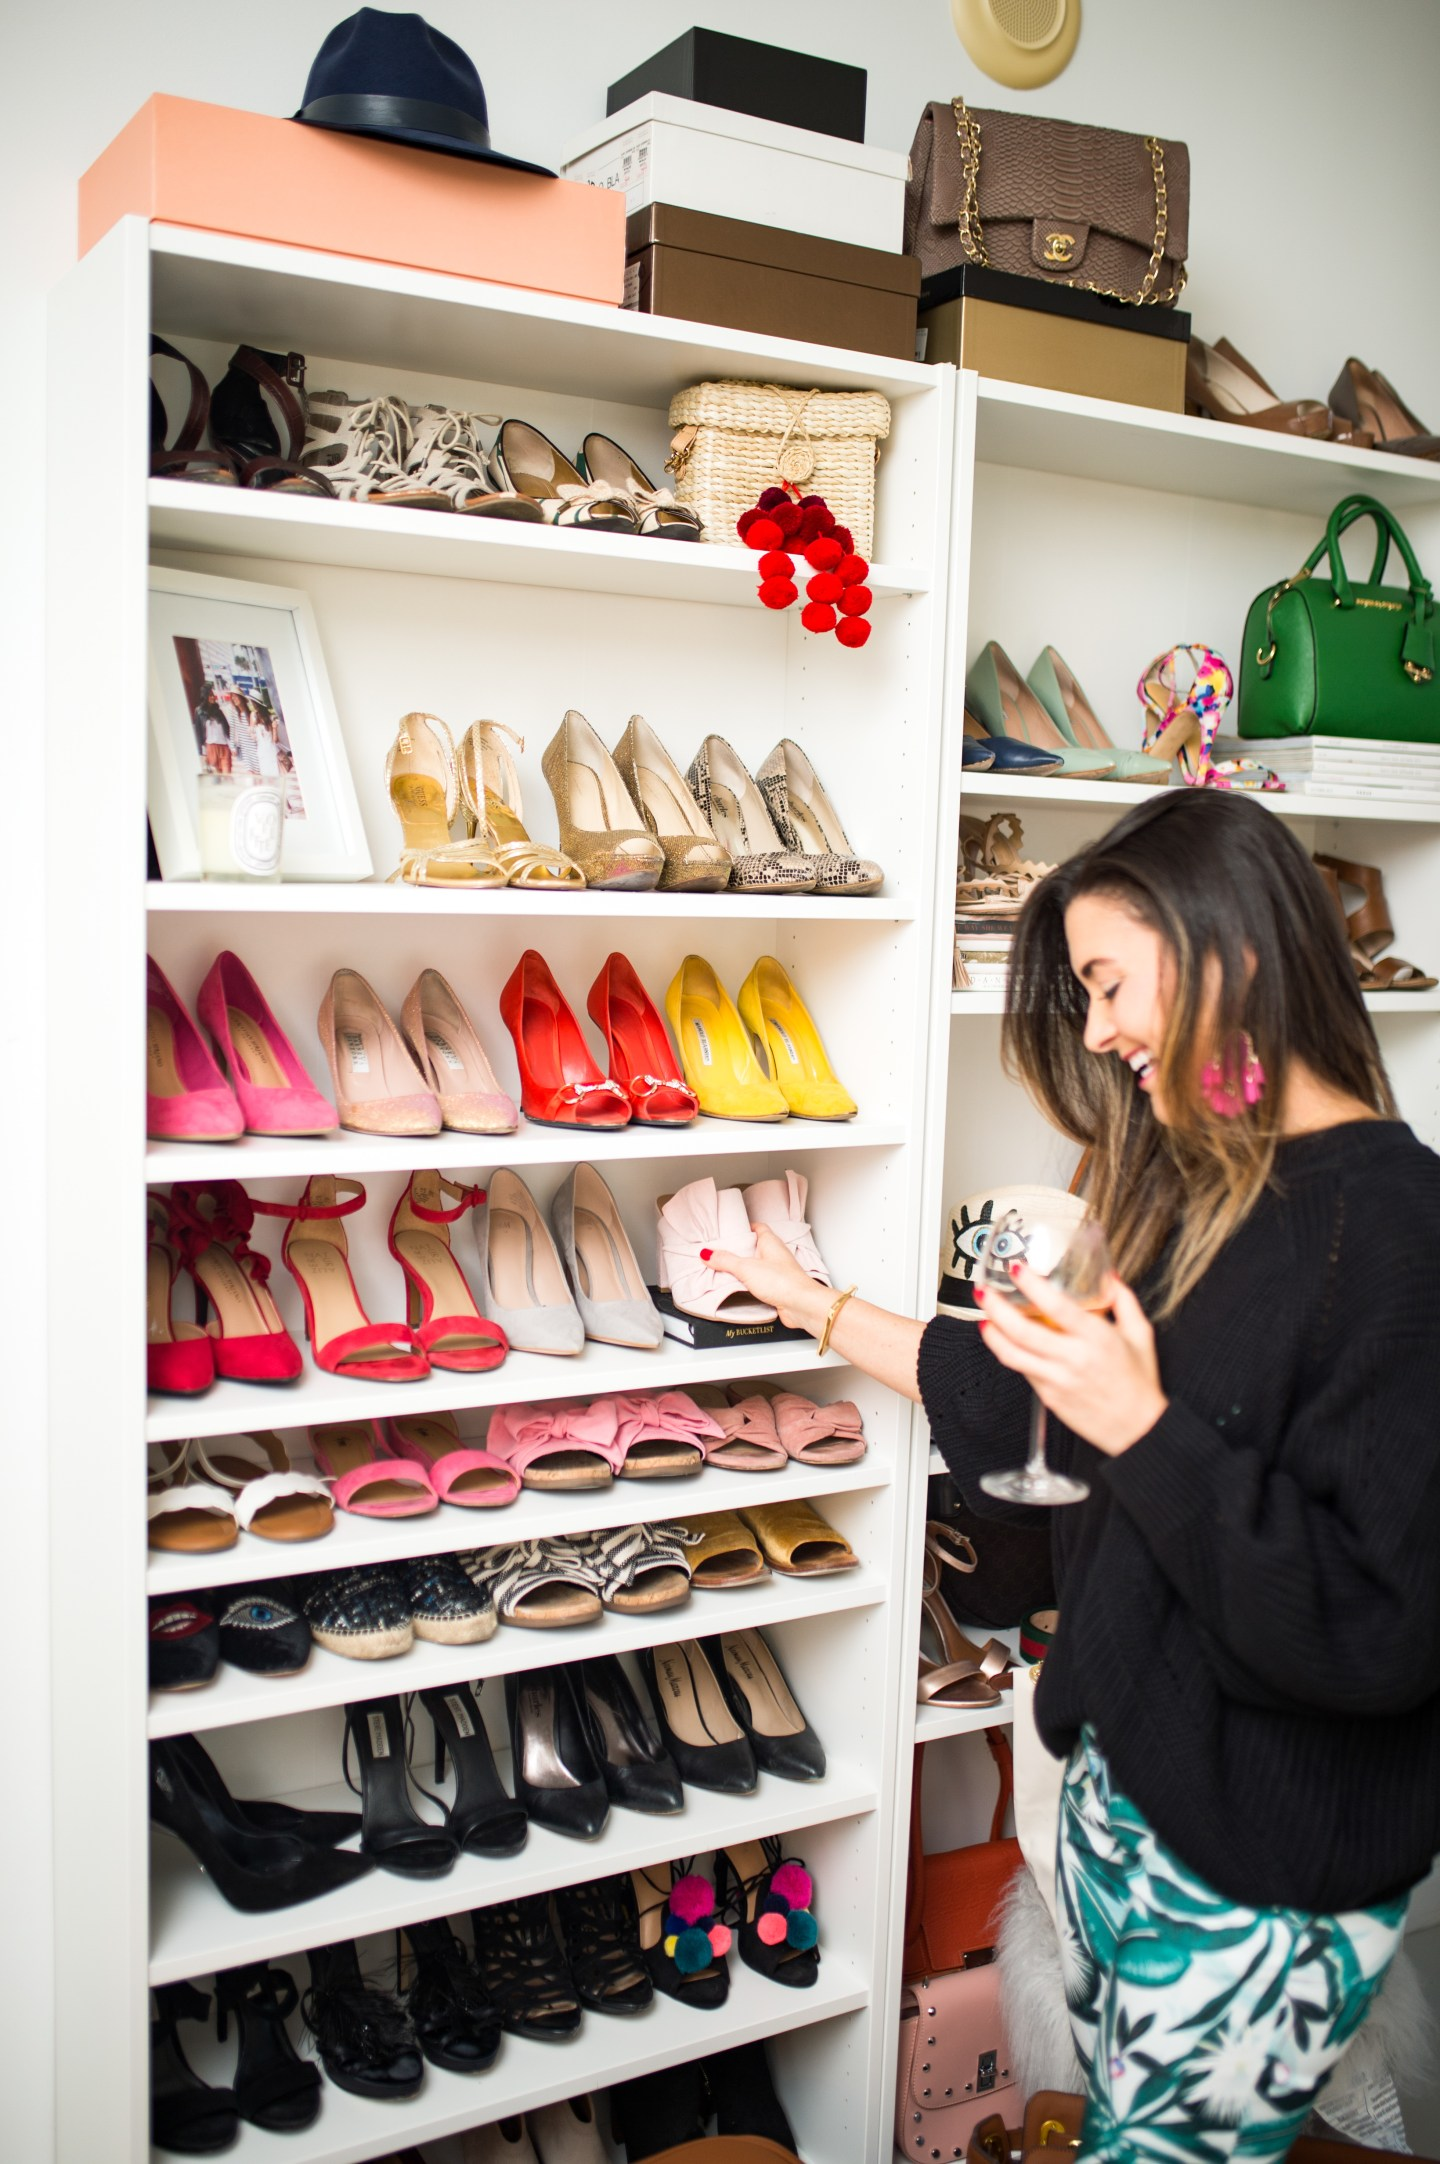 10 Steps for the Ultimate Closet Detox to Feel Organized and Empowered